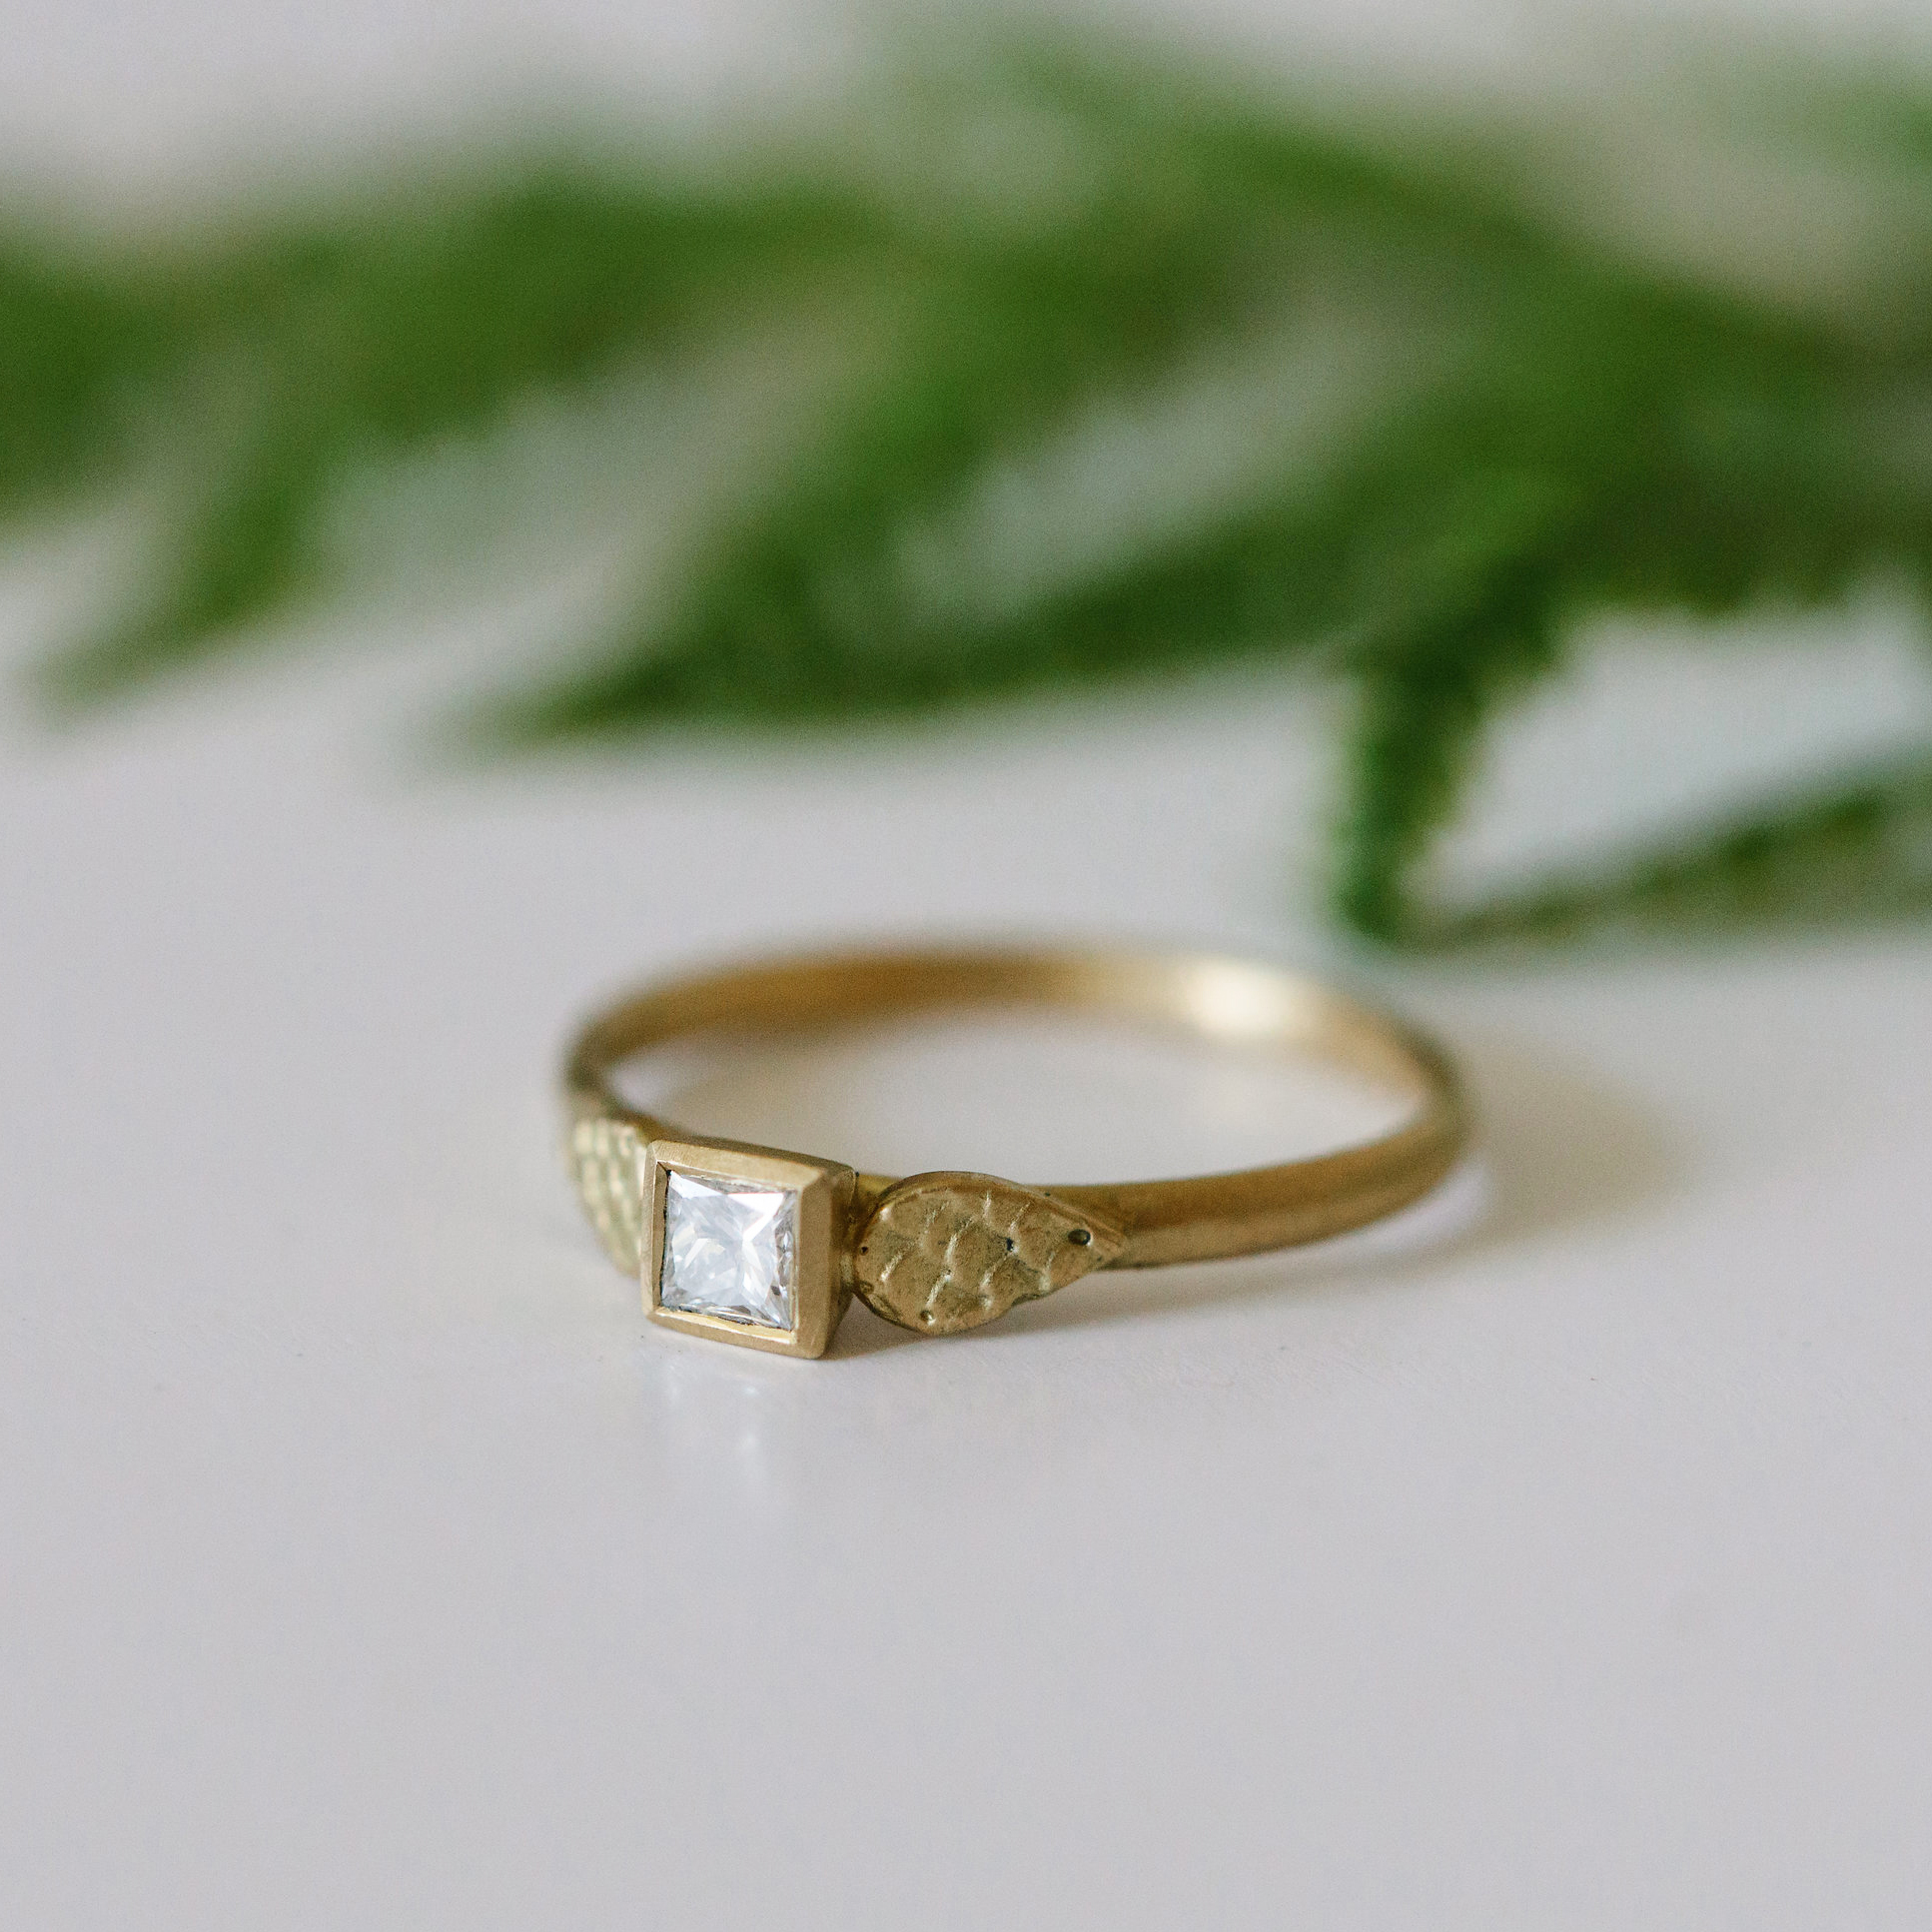 Delicate Details - Natural charm from this square cut white diamond with an 18ct yellow gold catkin motif inspired by the delicate nature inspired motifs found in antique rings. Handmade in Scotland by Alison Macleod available at Gill Wing Jewellery.